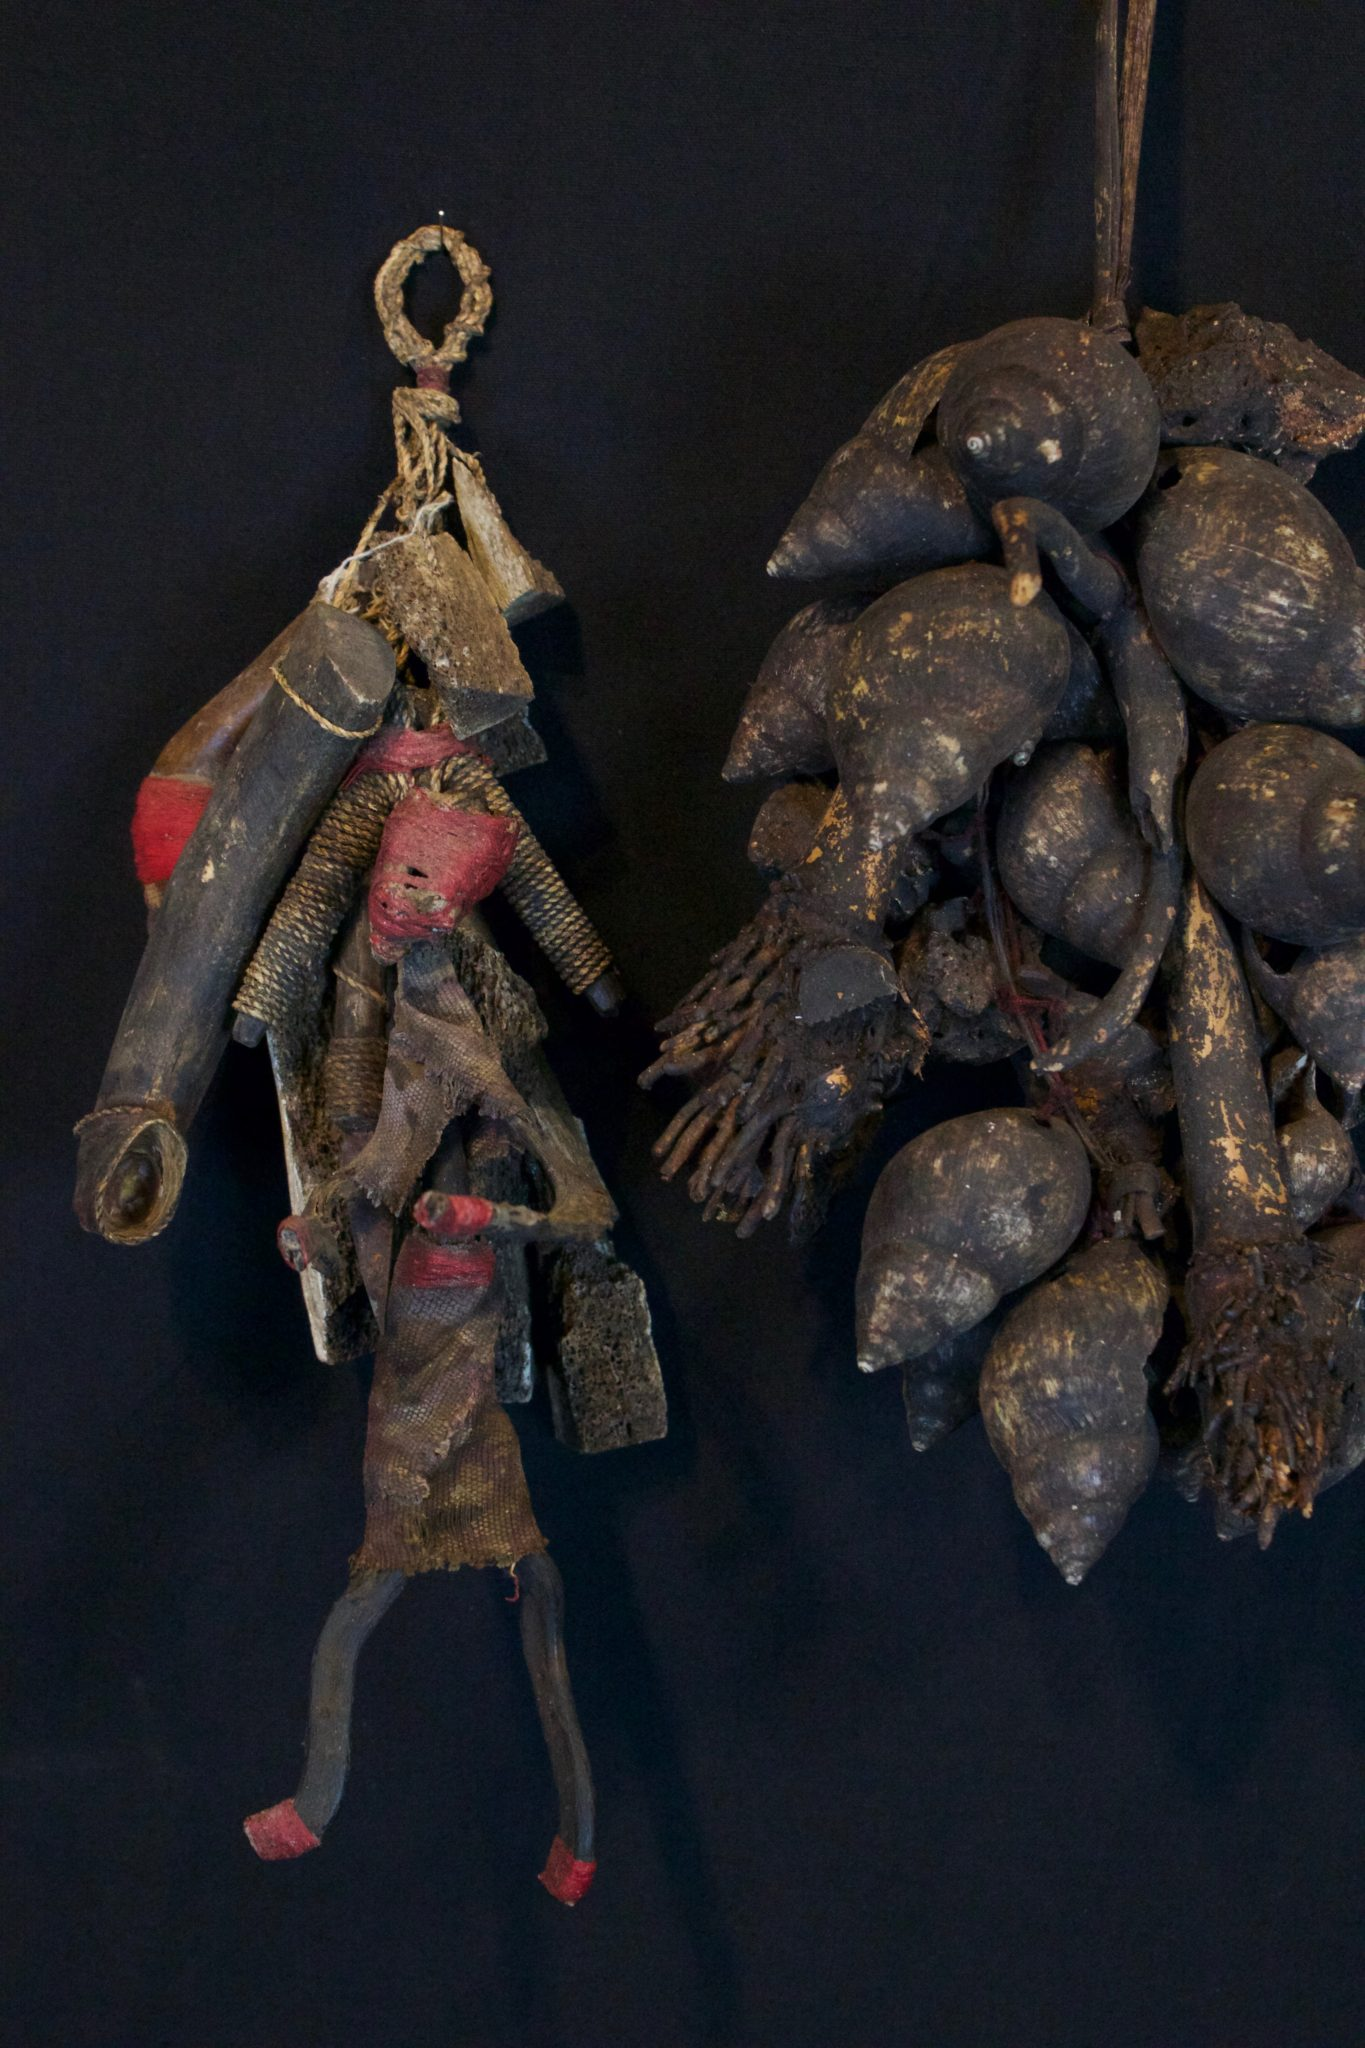 """Shaman Healing Fetish Rattles, Lombok, Lesser Sunda Islands, Indonesia, Early to mid 20th c, Wood pigmented with soot, metal blade, cloth fiber, patinated with age and use. Used for healing rituals - Shaken to fend off harmful spirits. Dimensions: (left - 12"""" x 5 ½"""" x 4"""", sold); (right - 14"""" x 7"""" x 6"""", Sold)"""